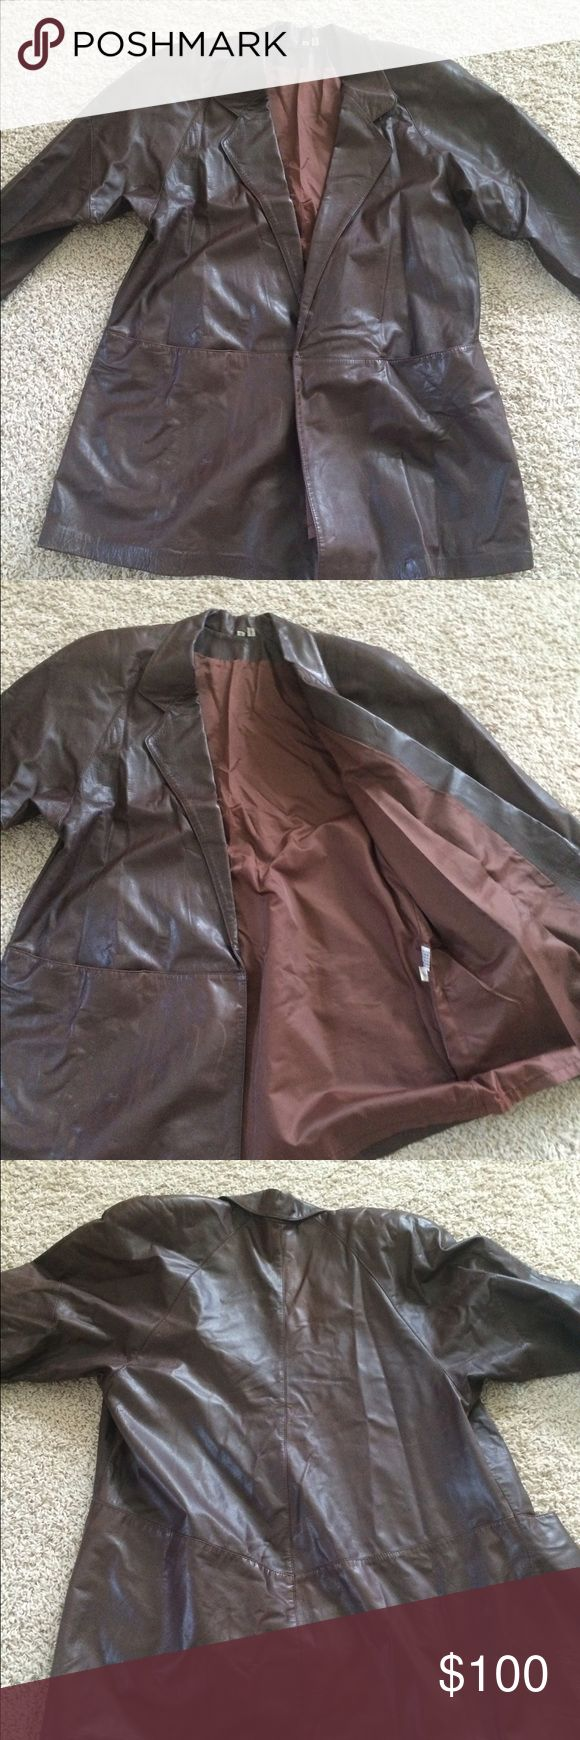 Vintage brown leather jacket Brown leather jacket women's size small Some marks- enlarge photos to see Very soft and comfortable Jackets & Coats